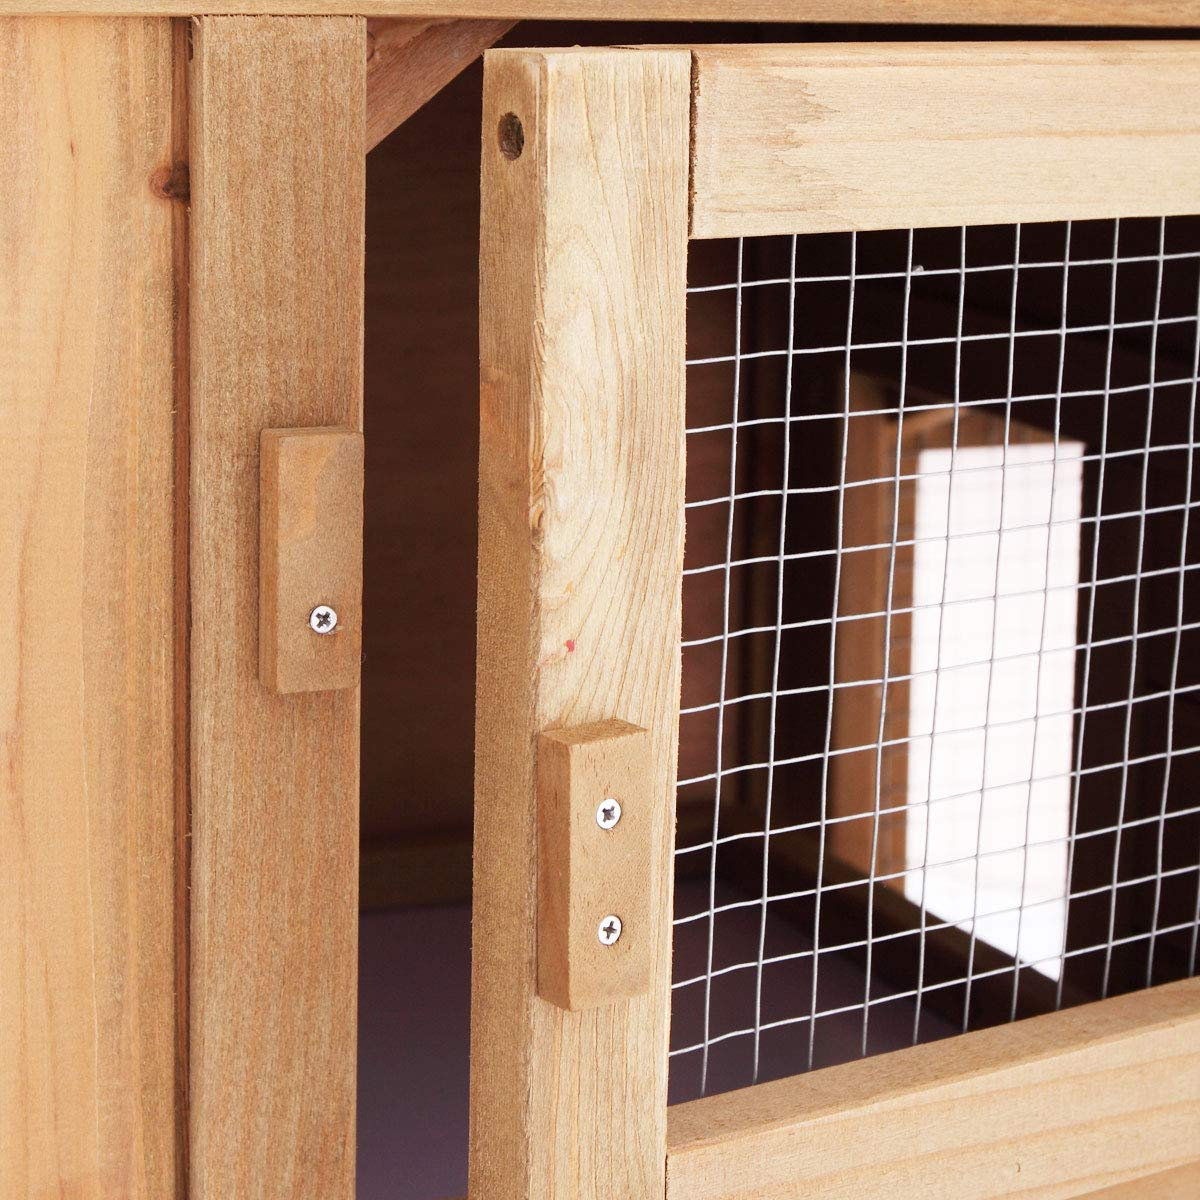 P PURLOVE Wood Bunny Hutch 54'' Large 2 Story Outdoor Bunny House with Removable Tray & Ramp, Backyard Garden Rabbit Cage/Guinea Pig House/Chicken Coop Nesting Box for Small Animals by P PURLOVE (Image #9)